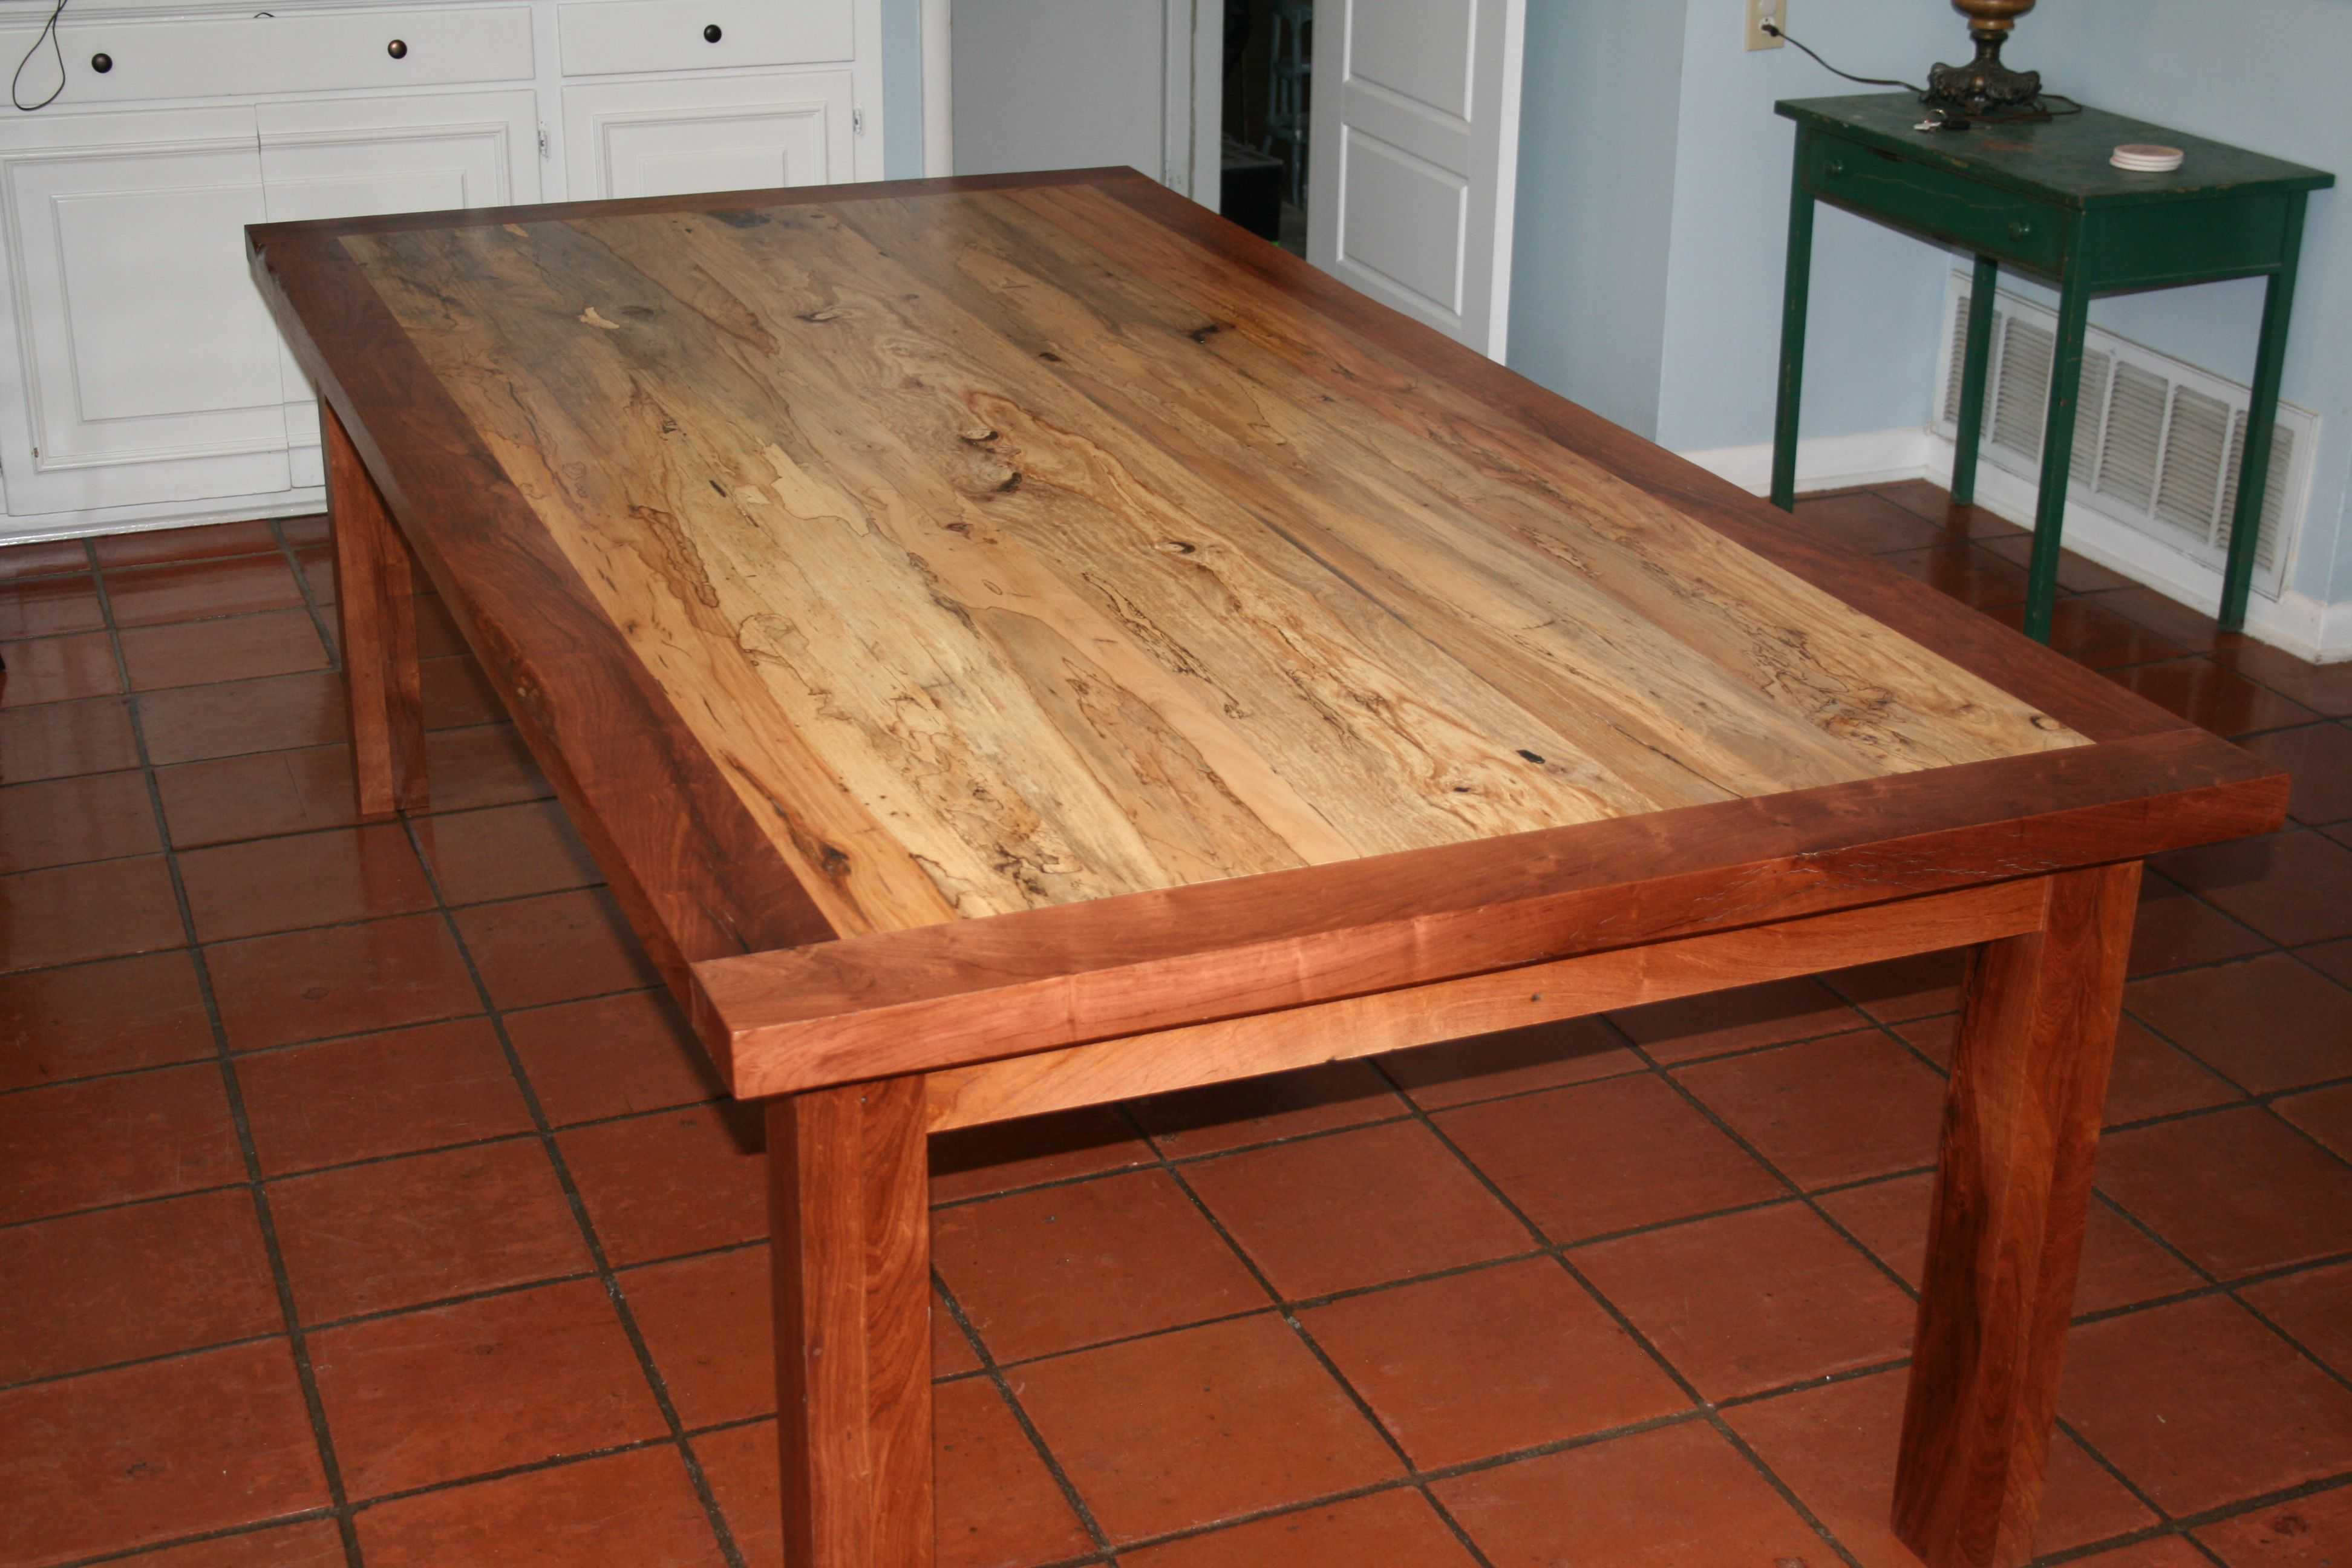 Hand Made Spalted Pecan Table With Mesquite Frame And Legs by